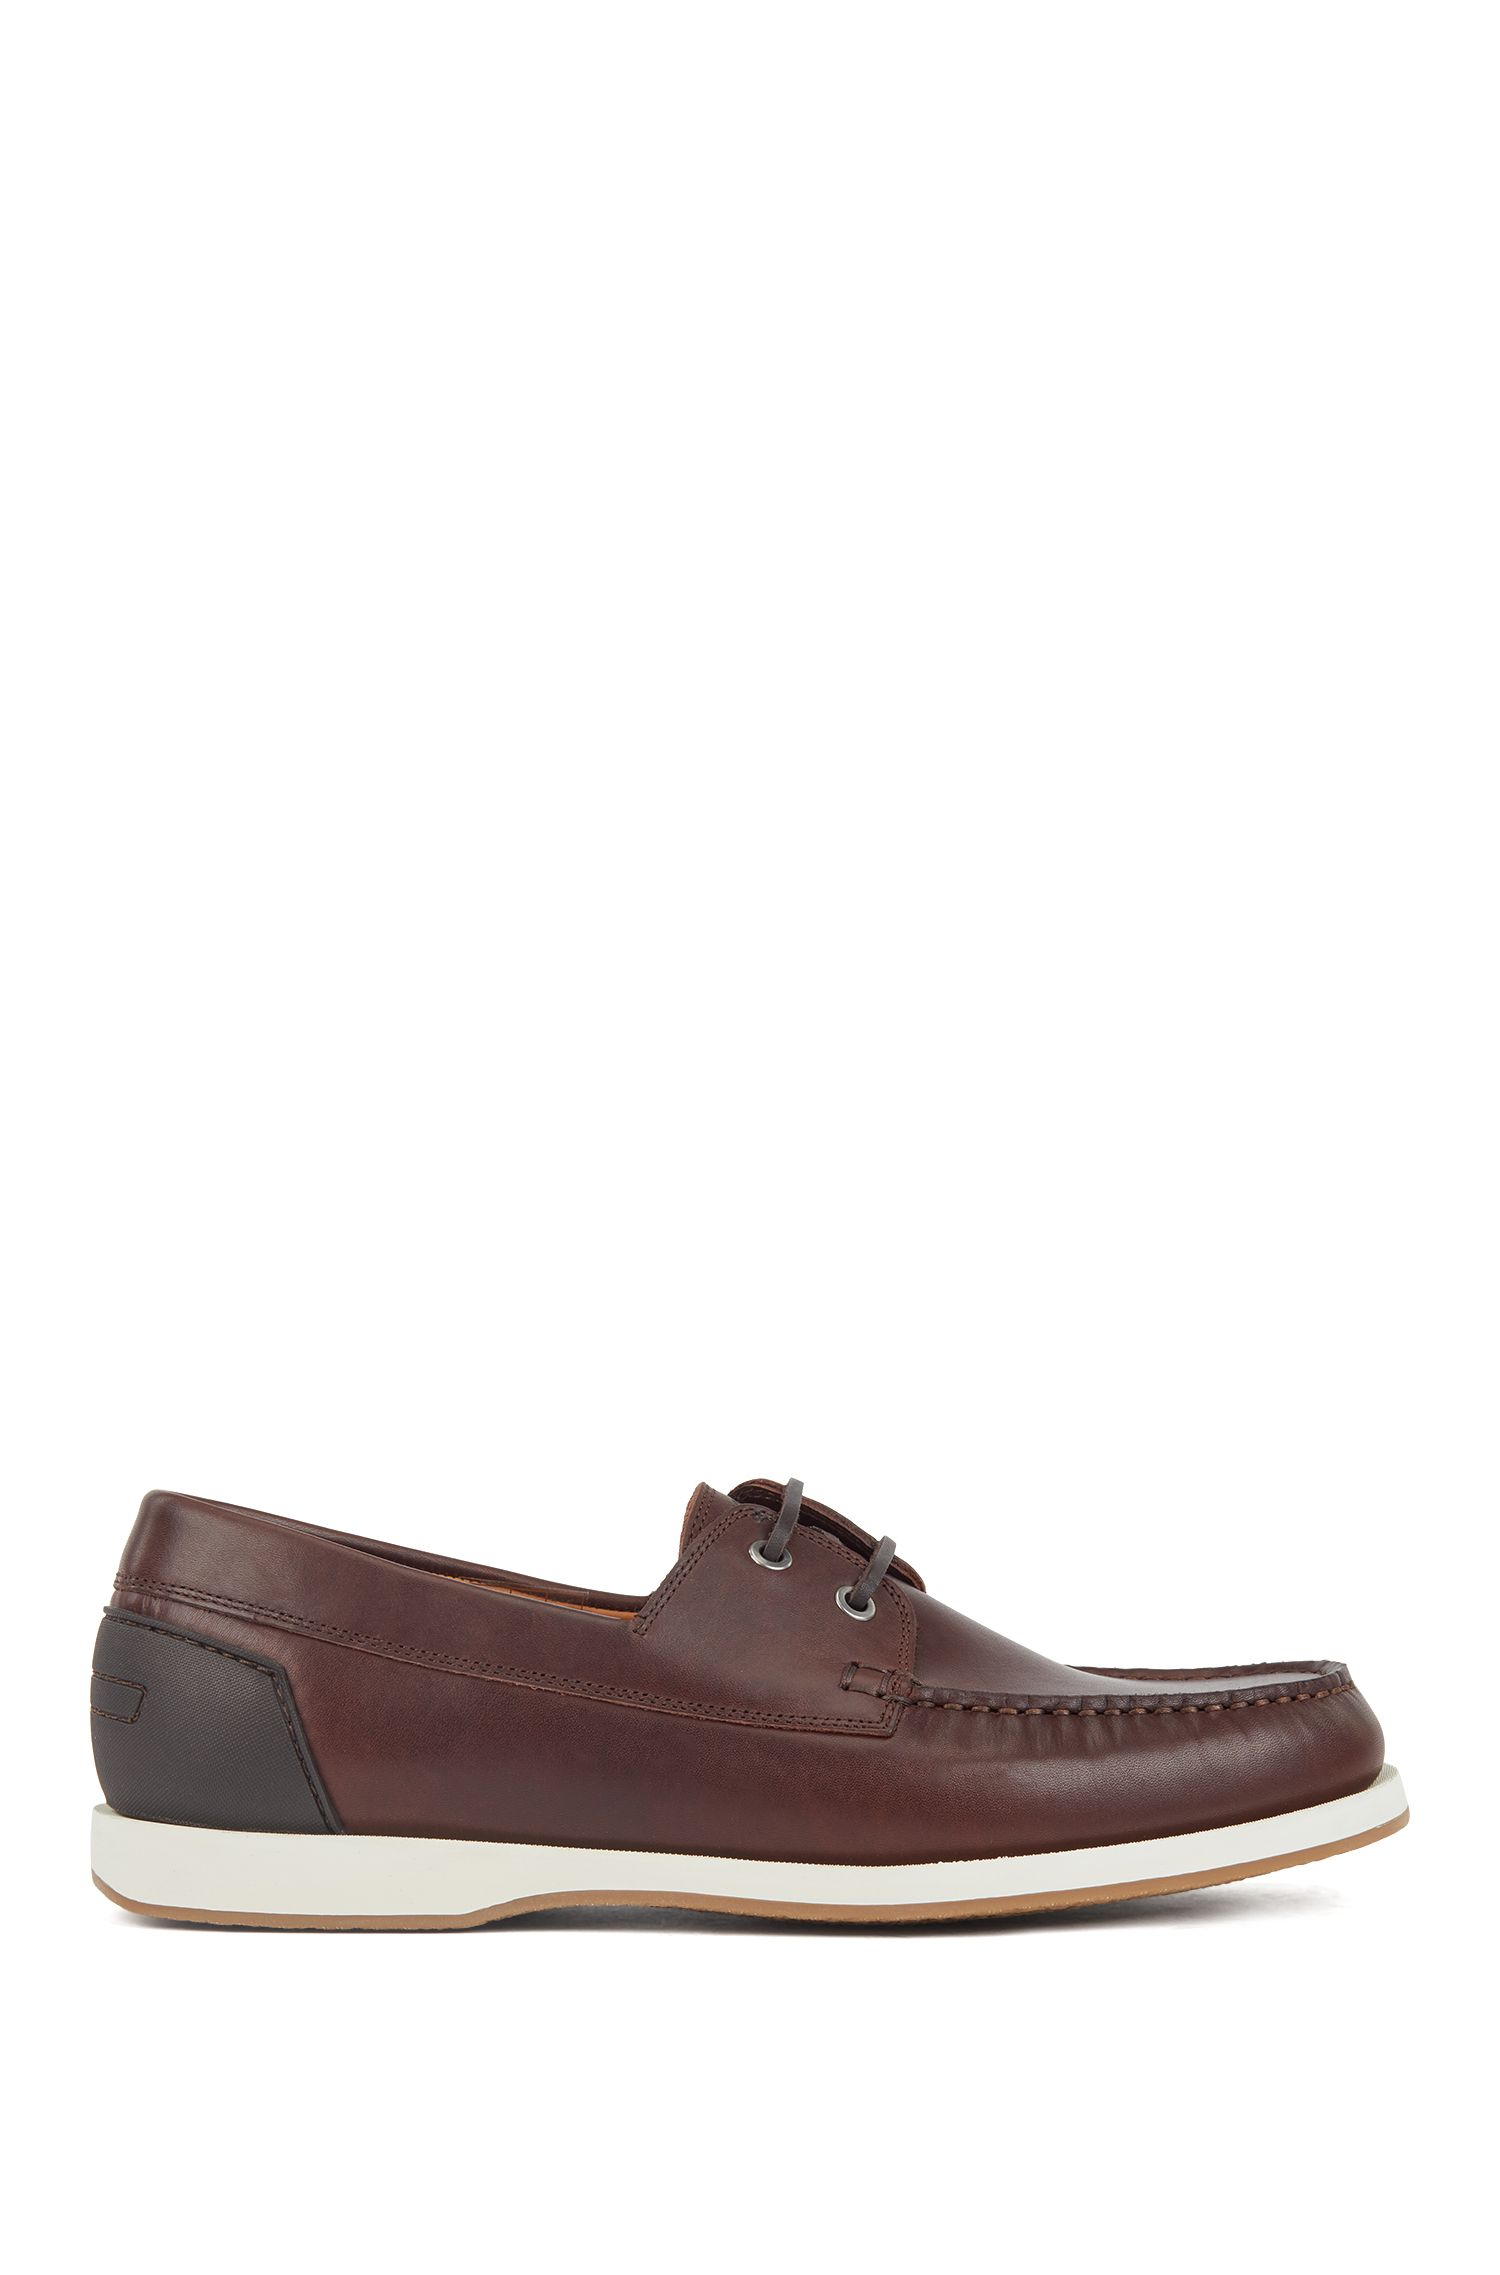 Leather moccasins with contrast sole and rubberised heel, Dark Brown